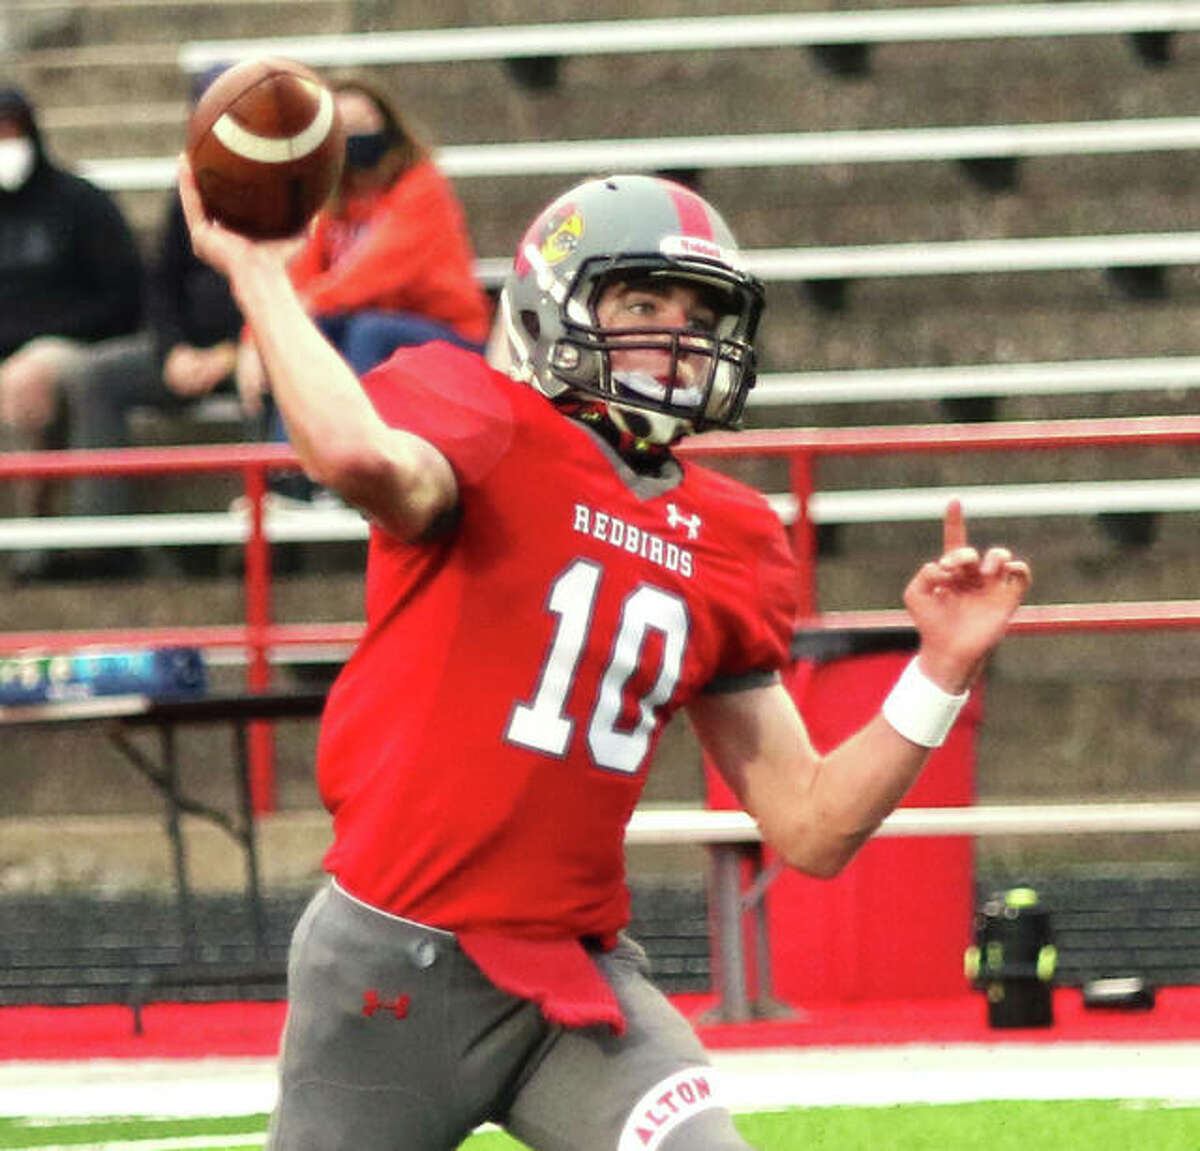 Alton quarterback Graham McAfoos threw a 20-yard touchdown pass to Jaylen Telford, but the Redbirds dropped a 27-20 decision to Quincy Friday night at Public School Stadium. McAfoos is shown in action against Champaign Central during the spring season